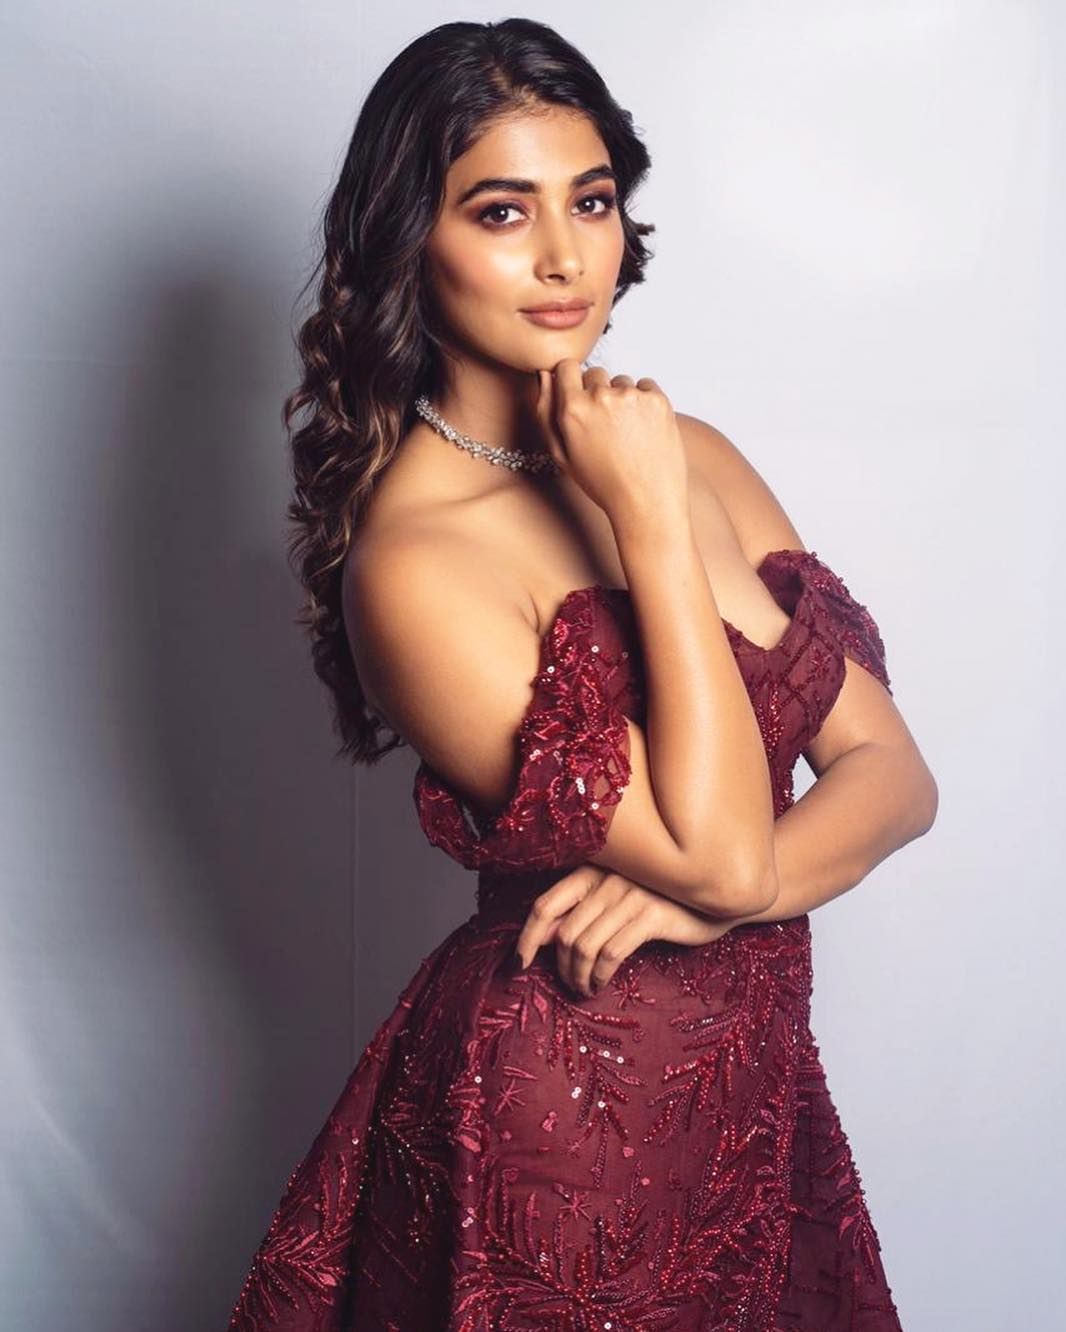 Pooja Hegde 2019 Latest Sexy Photos Download Pooja Hegde New Instagram Photos 2019 Download